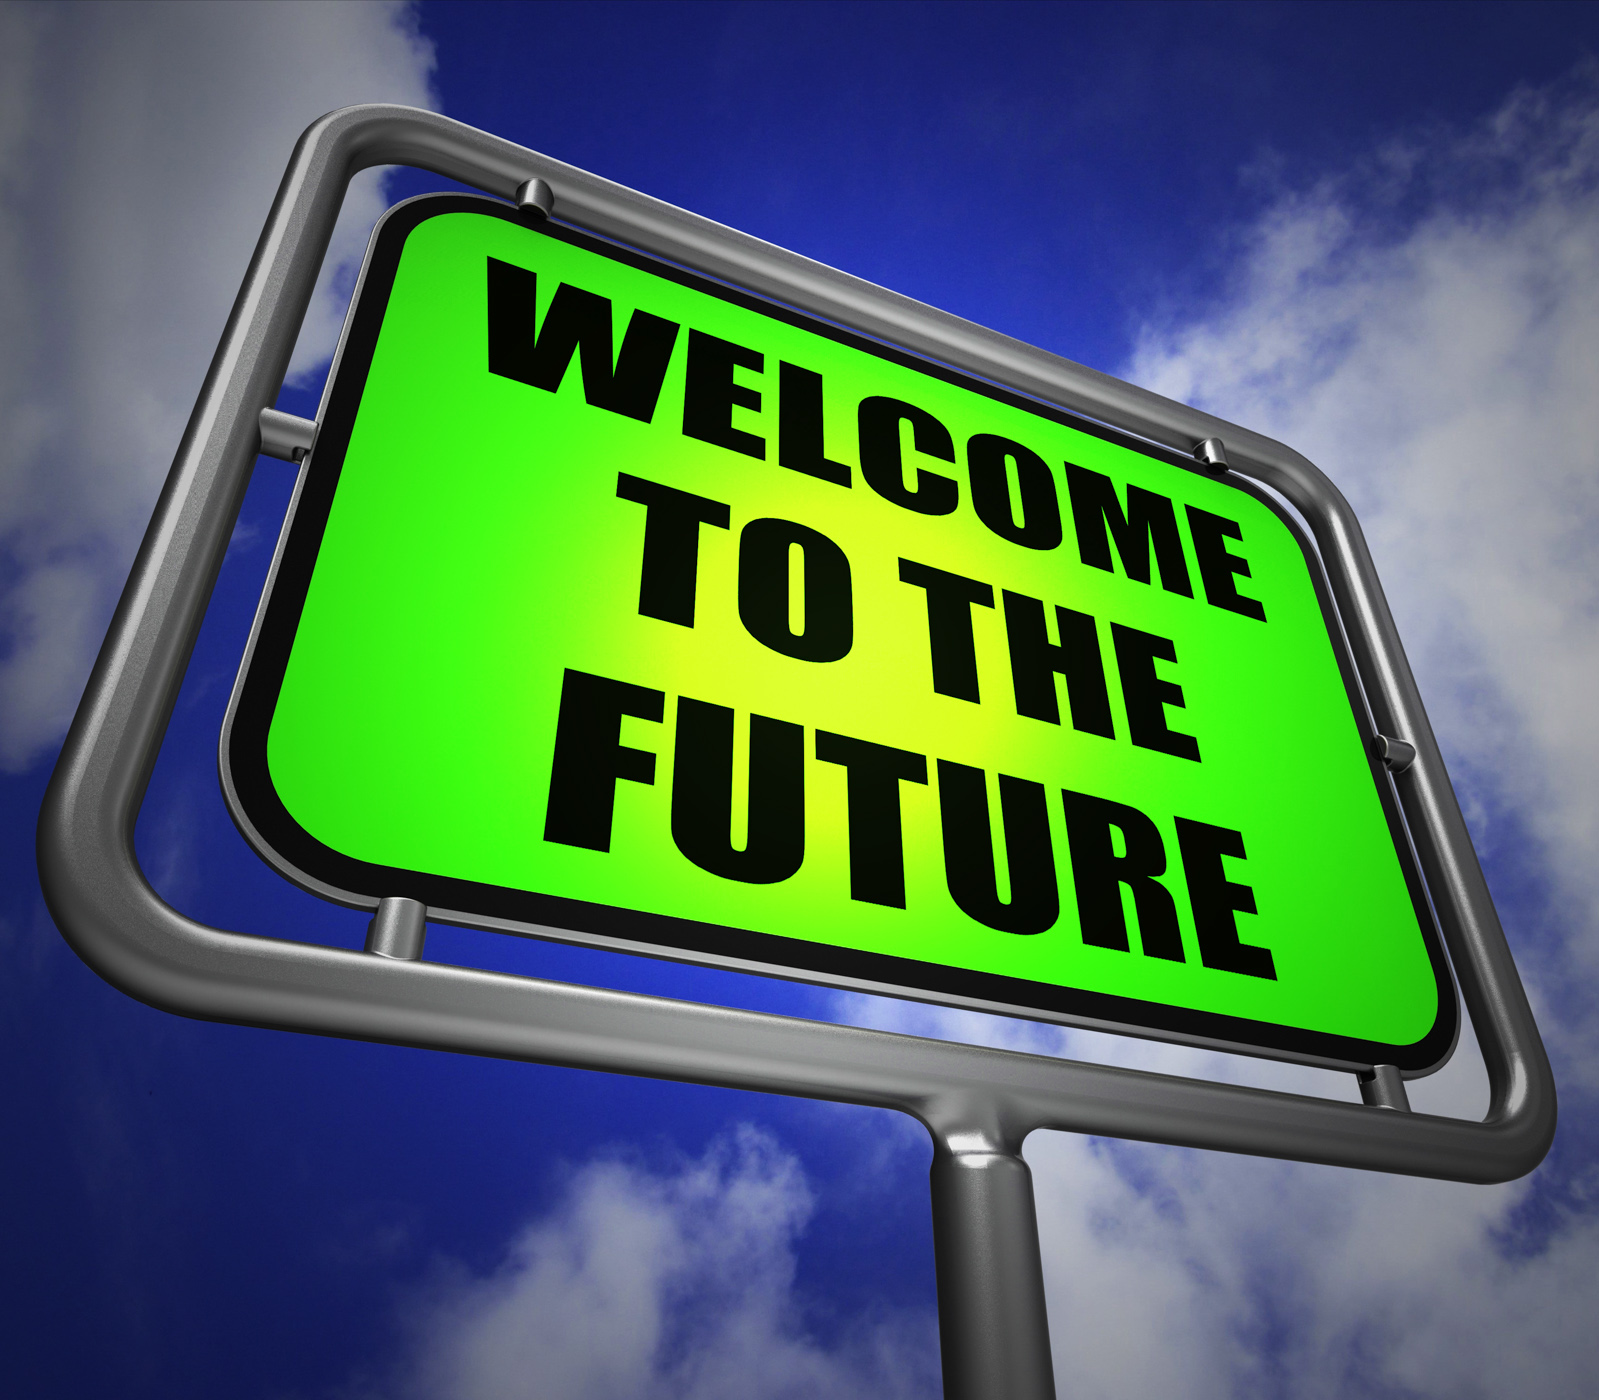 Welcome to the Future Signpost Indicates Imminent Arrival of Time, Motivational, Welcome, Ultimate, Time, HQ Photo